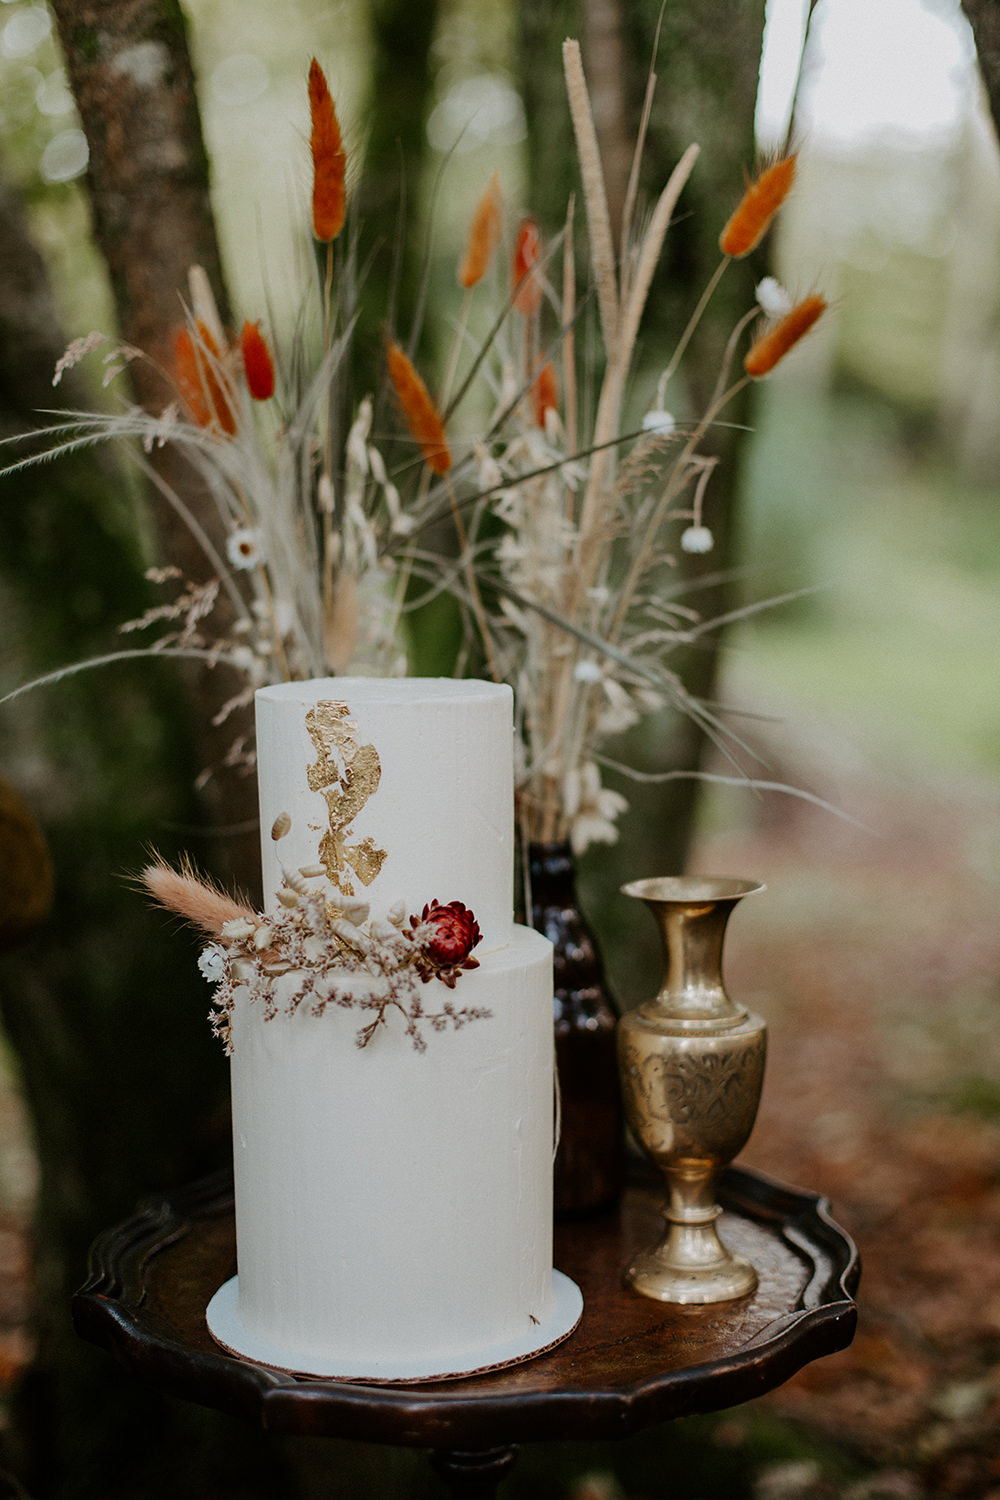 Iced Cakes Flowers Grasses Pampas Grass Gold Leaf Boho Wedding Ideas The Enlight Project